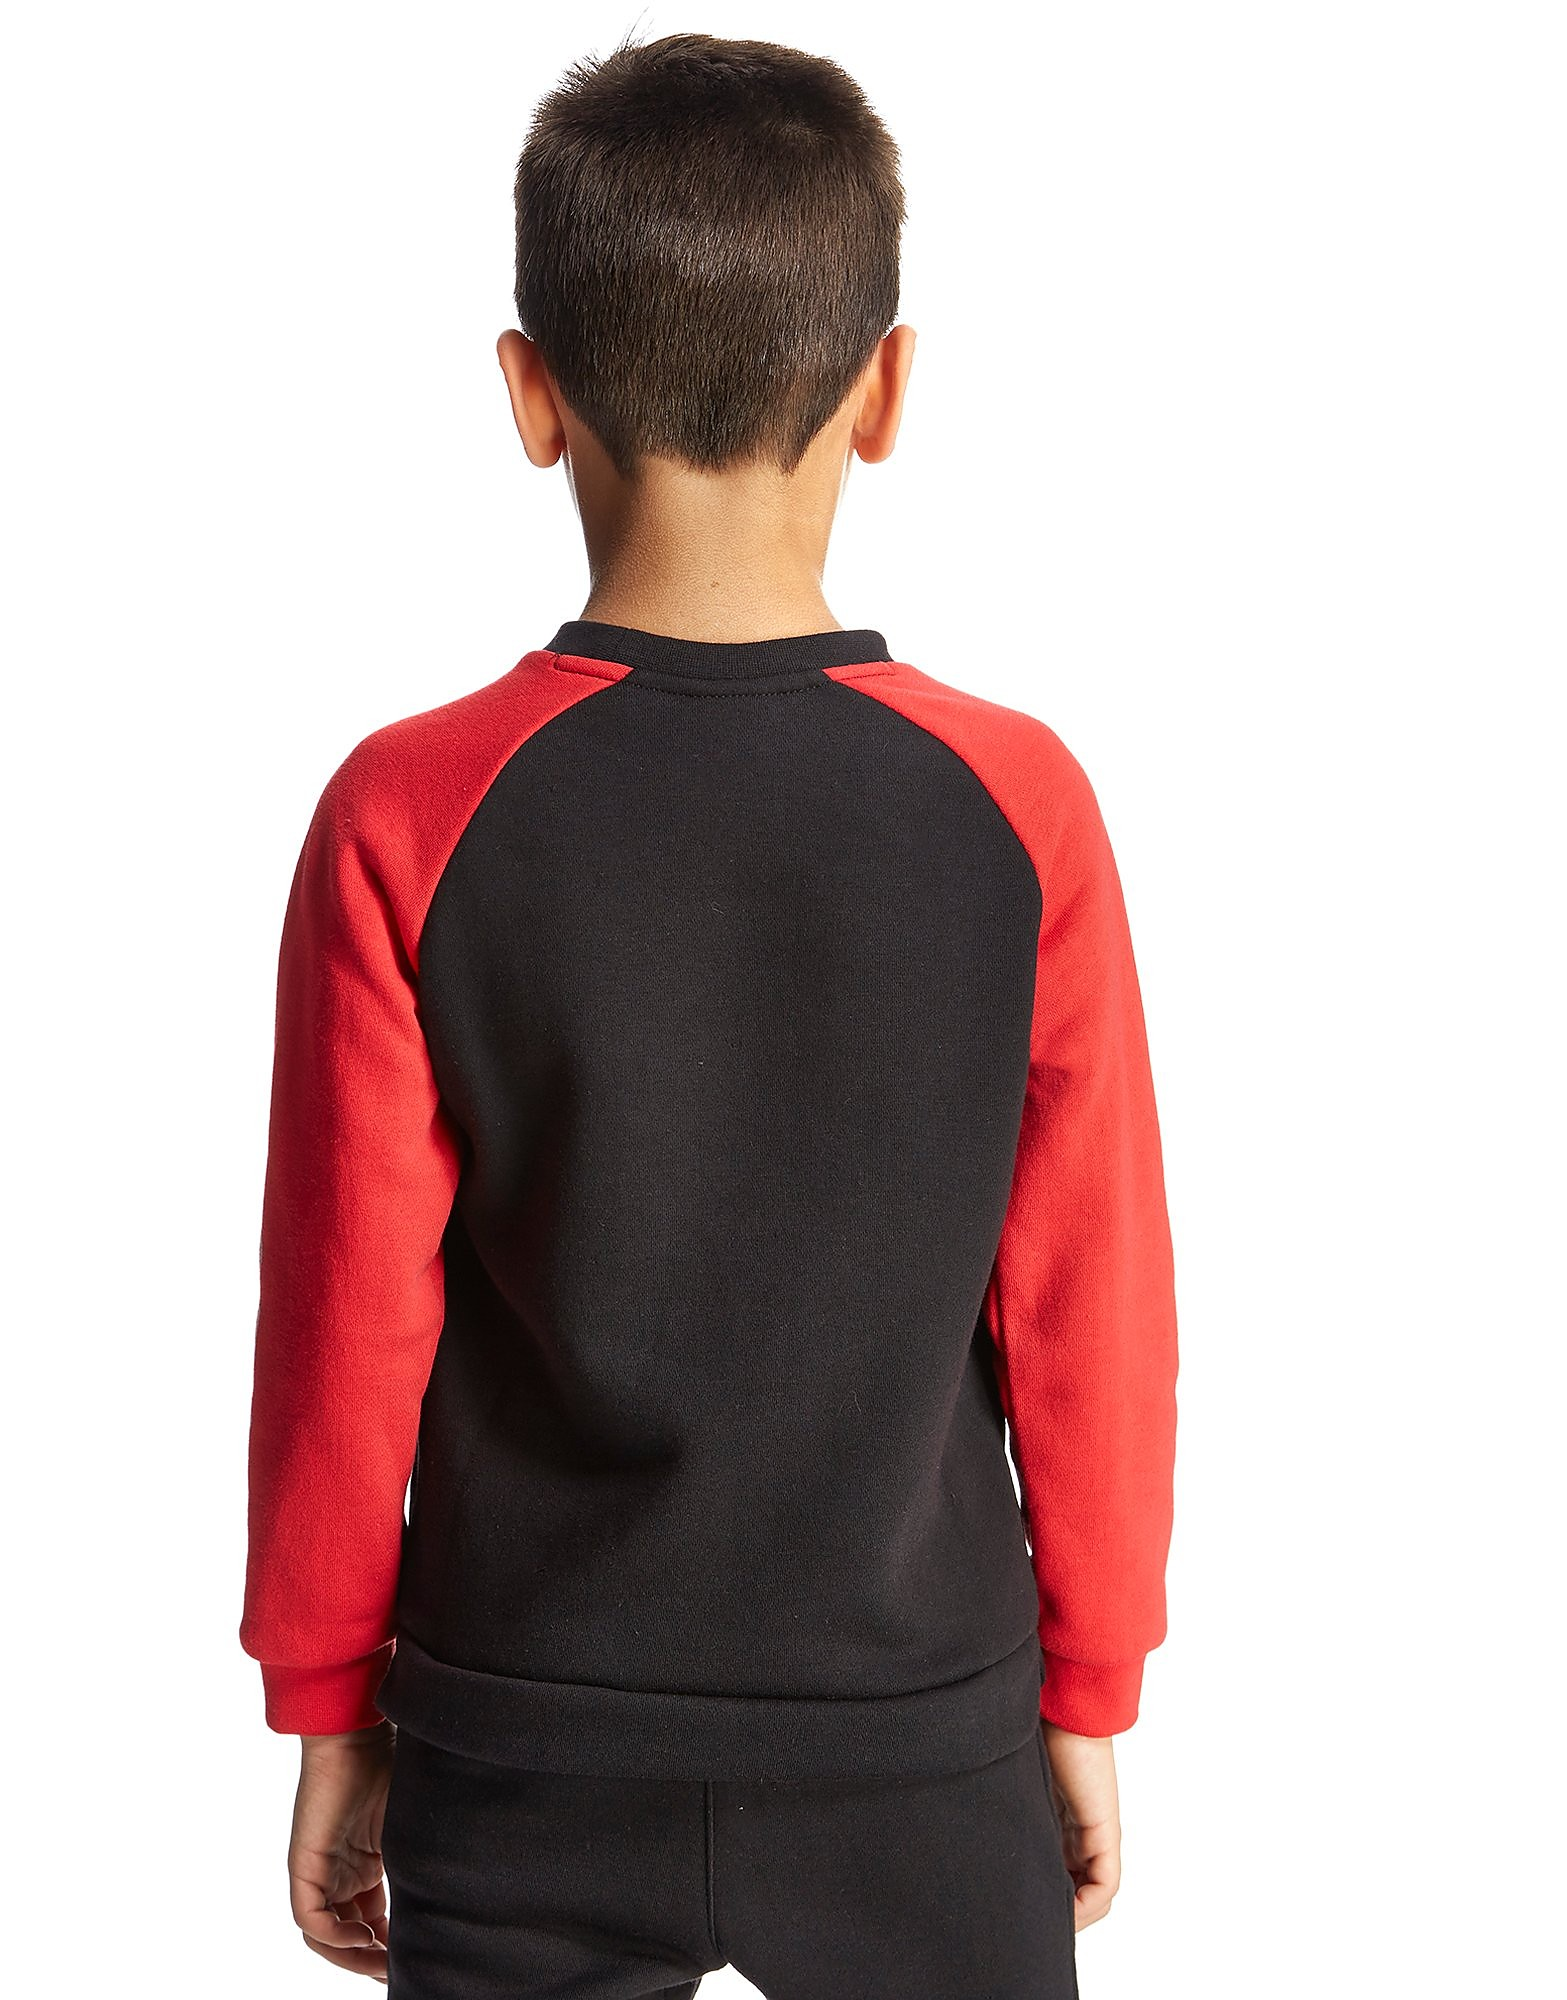 Nike Air Crew Sweatshirt Children